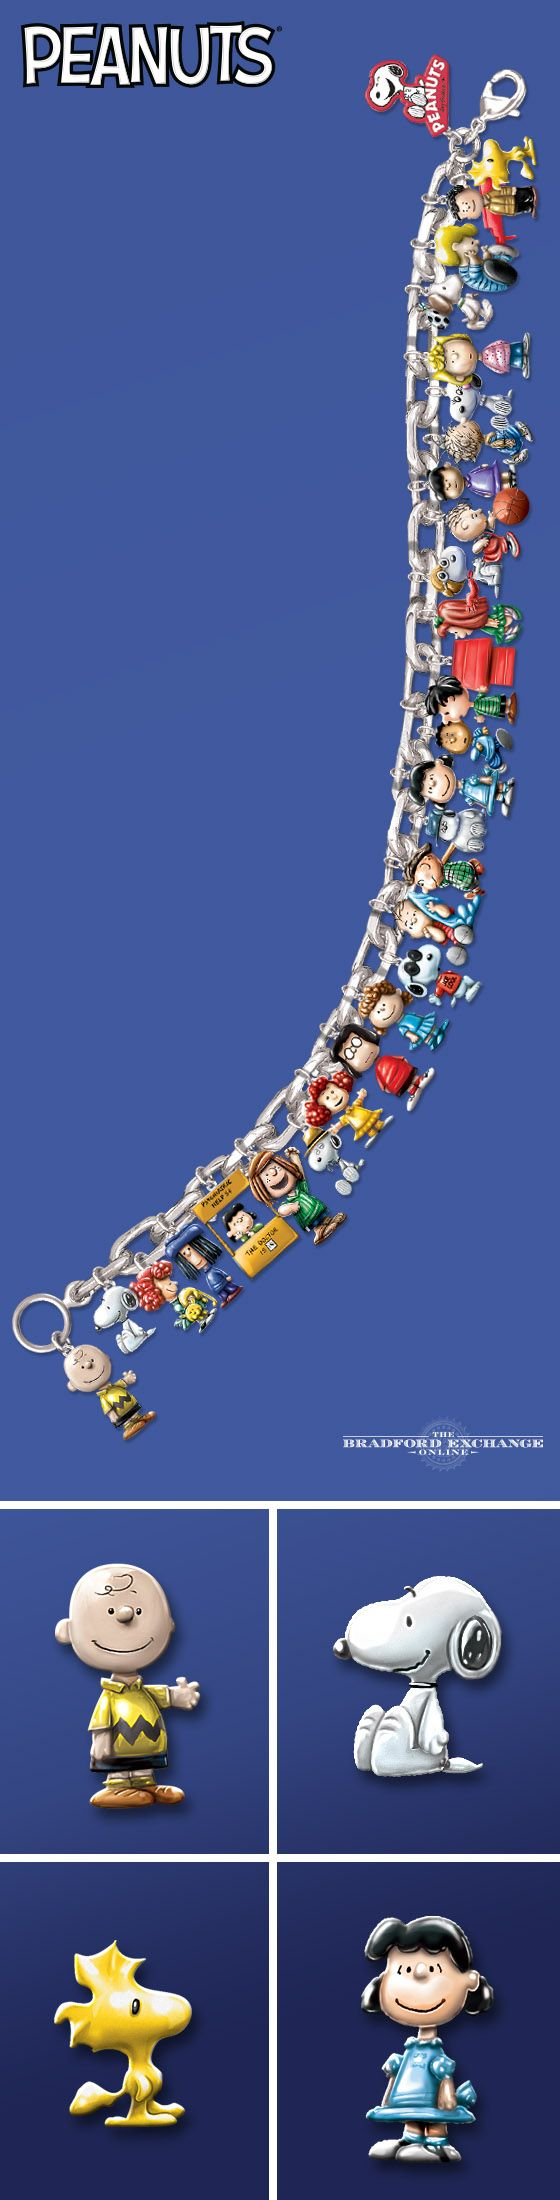 Wear the ultimate PEANUTS tribute! This first-of-its-kind collector's edition charm bracelet features 30 handcrafted enamel charms with some of your favorite characters, including Charlie Brown, Snoopy, Woodstock, Lucy, Linus and more.